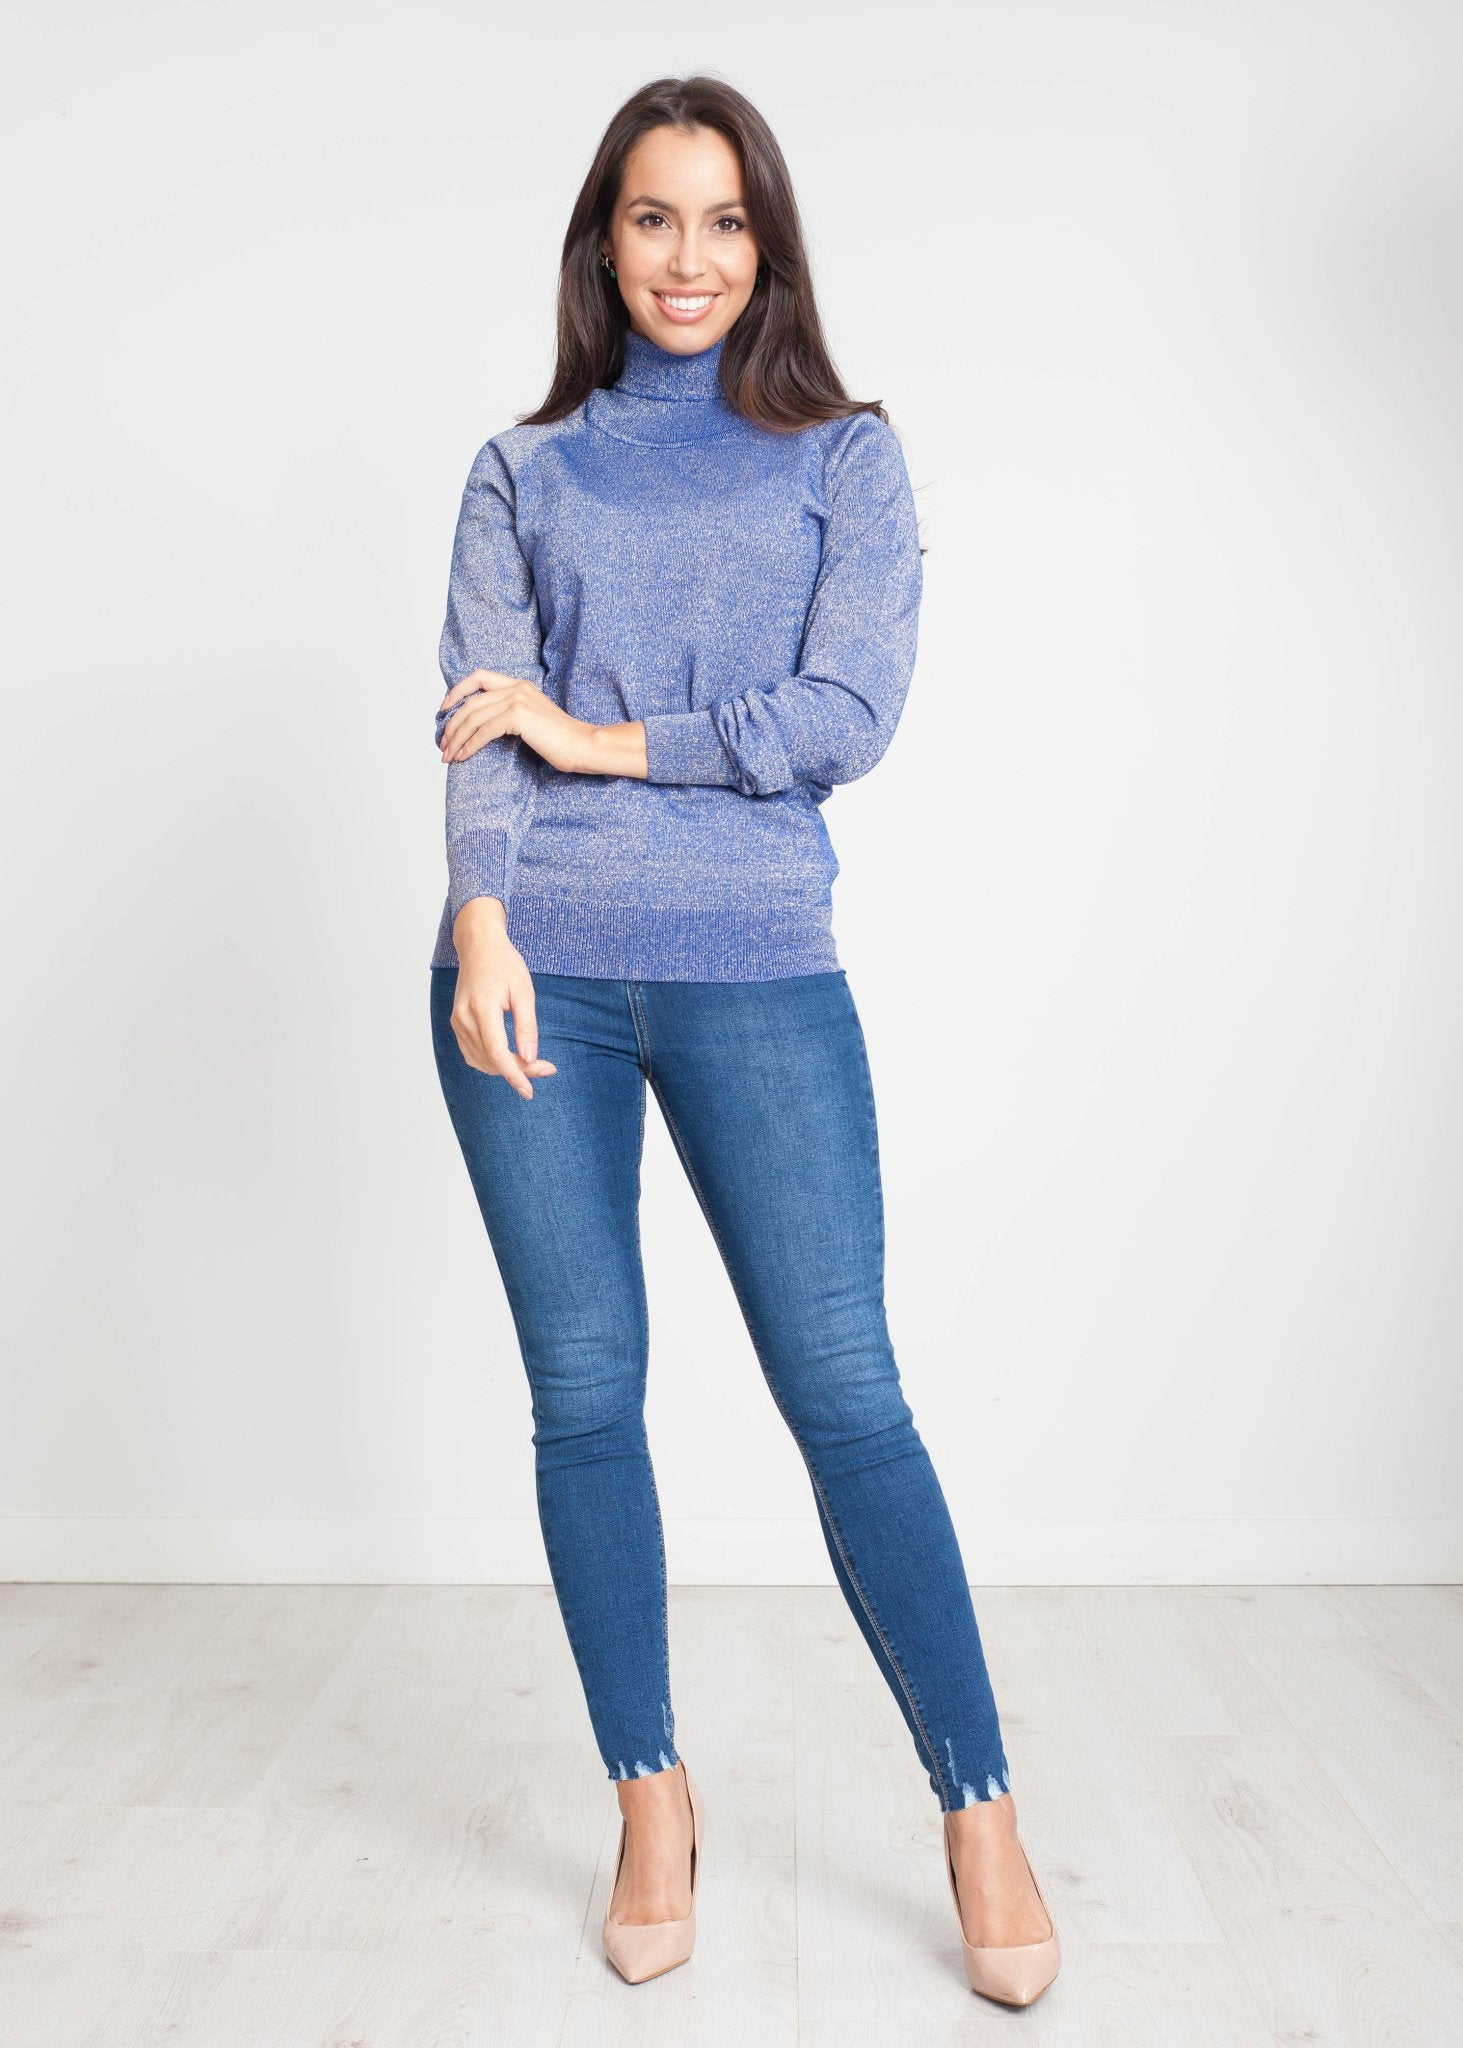 Tina Polo Neck In Blue Shimmer - The Walk in Wardrobe